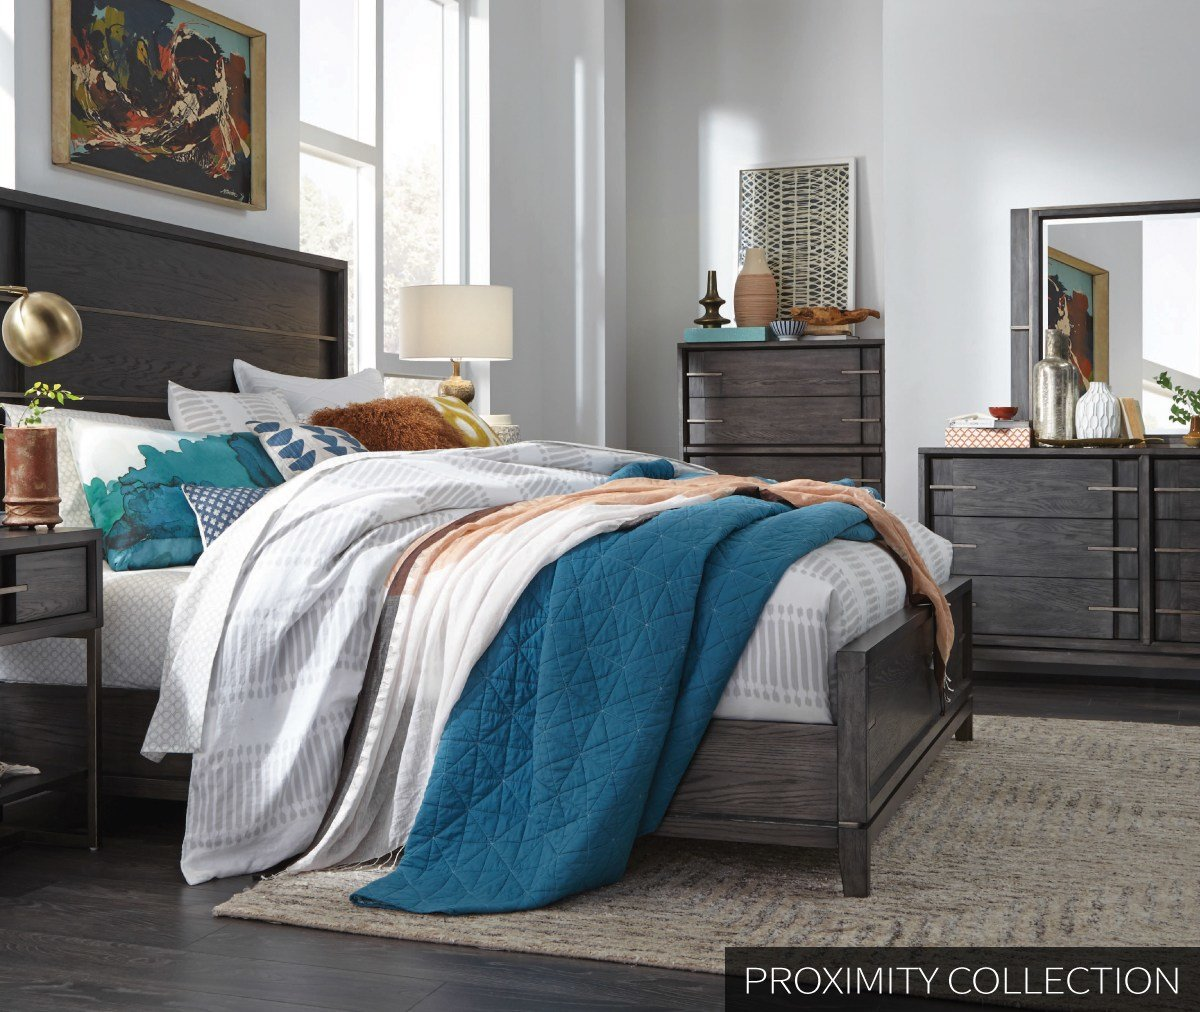 Best Bedroom Furniture Beds More Walker Furniture Las Vegas With Pictures